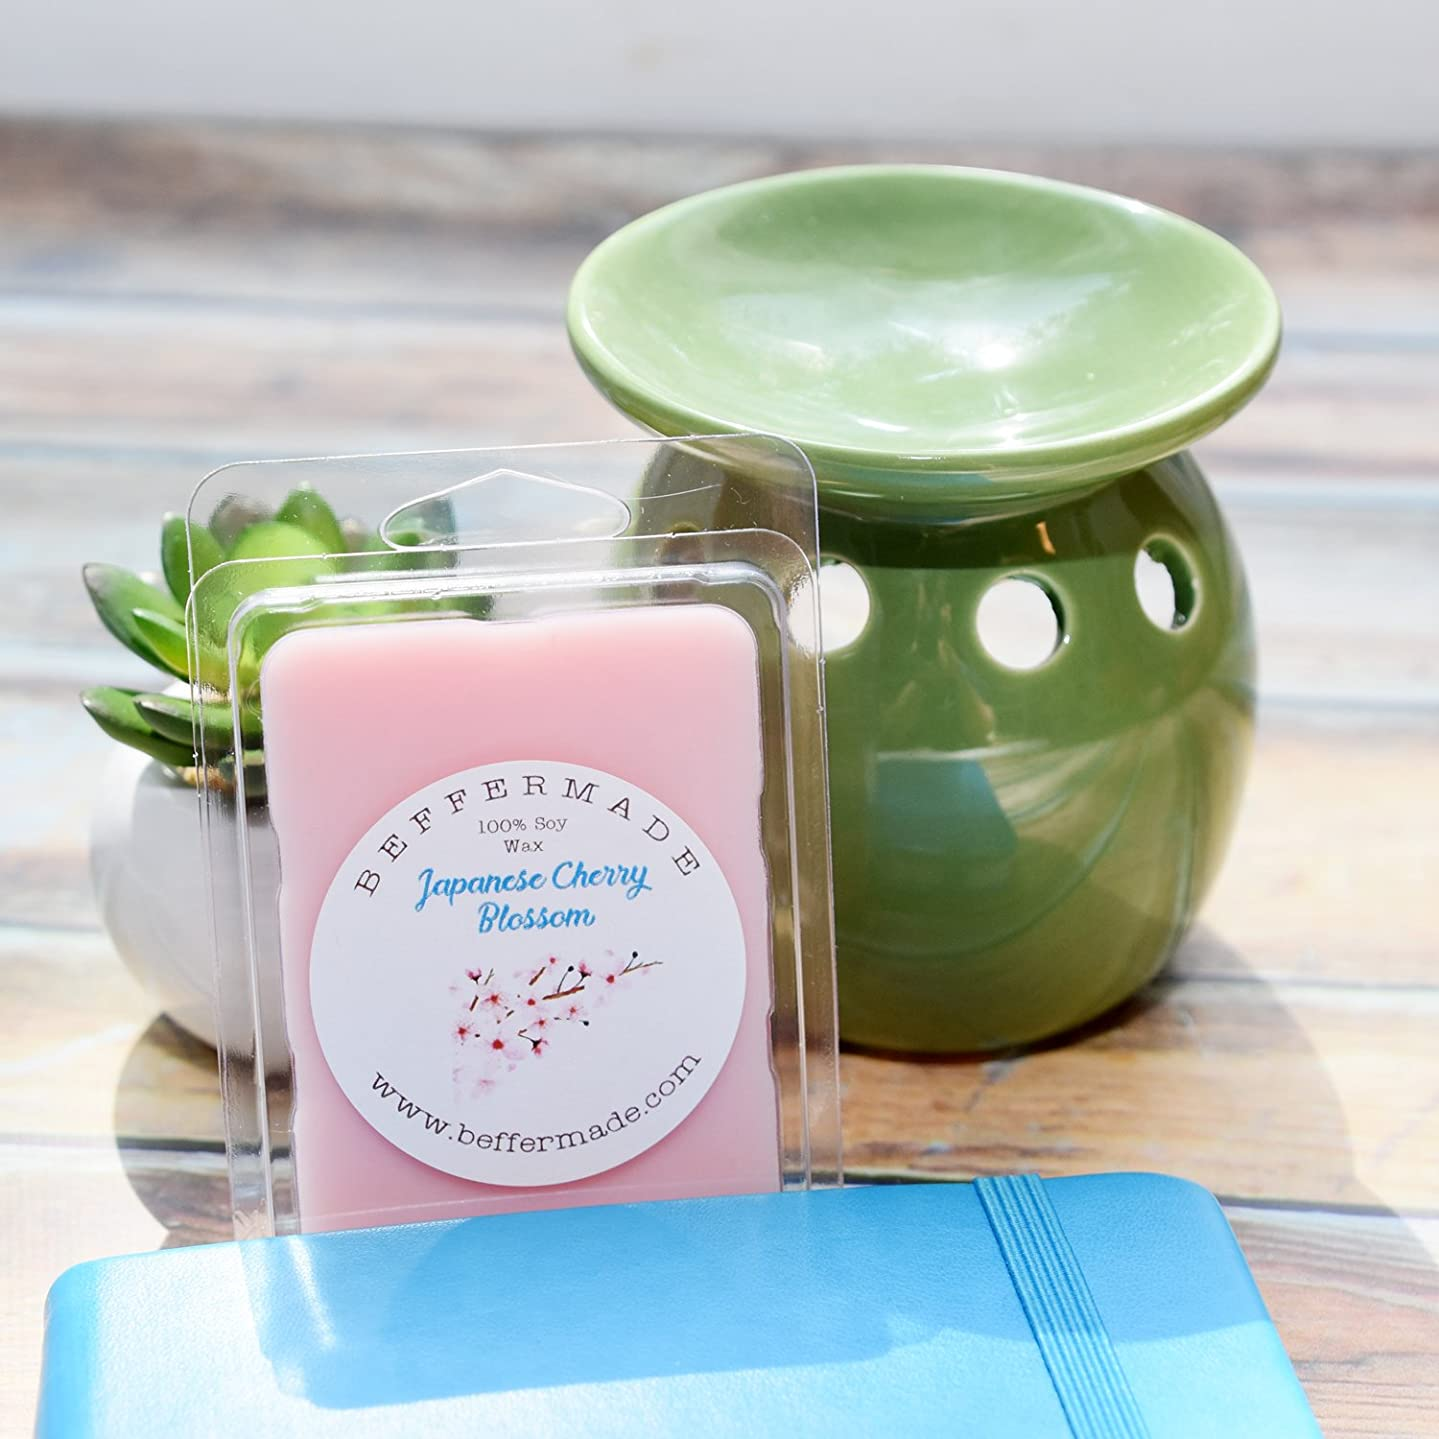 Japanese Cherry Blossom Scented soy wax melts - pack of 6 cubes